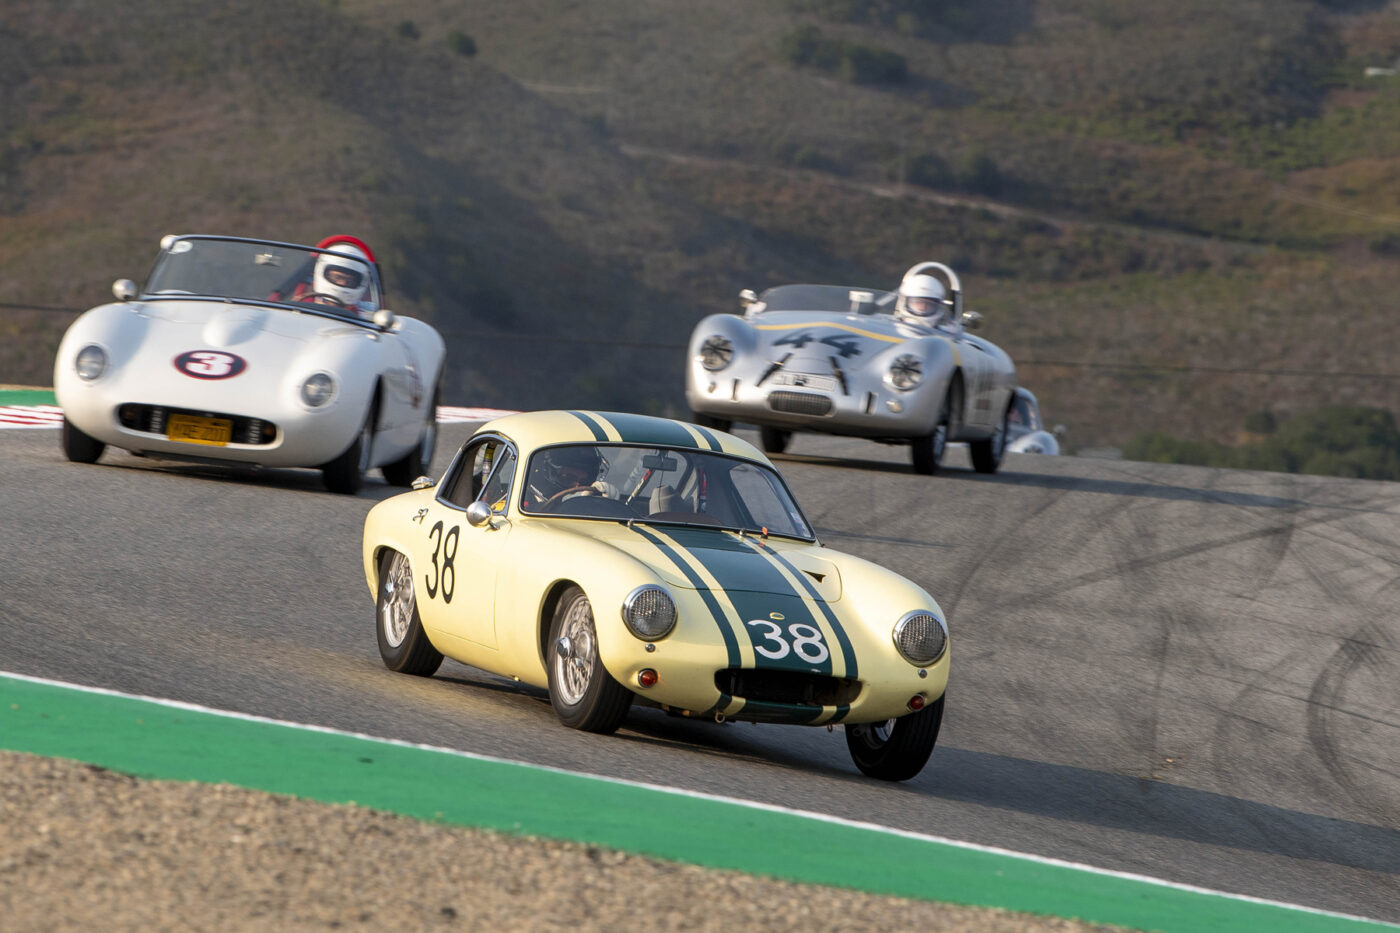 Group 1/1955-1964 GT - #38 Henry Moore enters the Corkscrew in his 1962 Lotus Elite - ©Rex McAfee